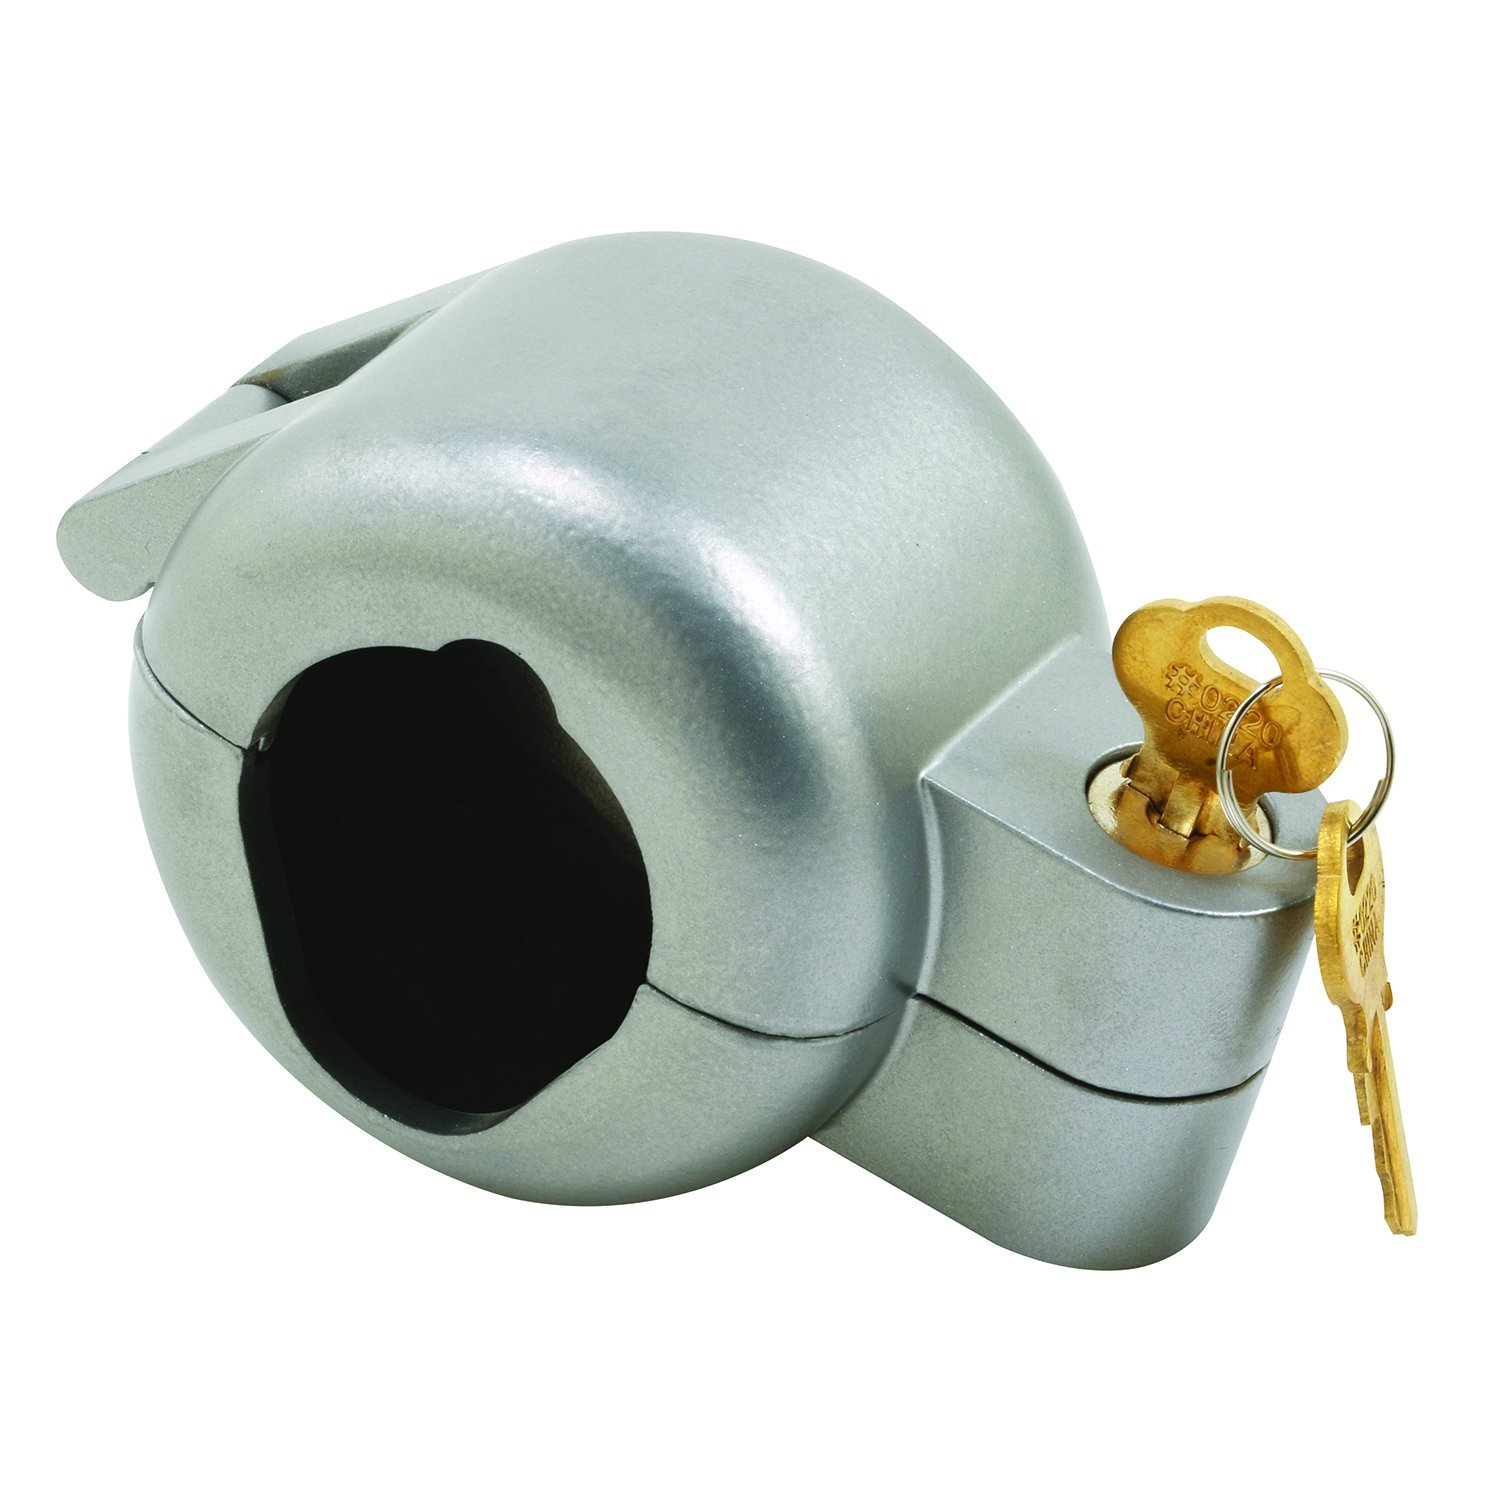 Prime-Line Products EP 4180 Door Knob Lock-Out Device, Diecast Construction, Gray Painted Color, Keyed Alike